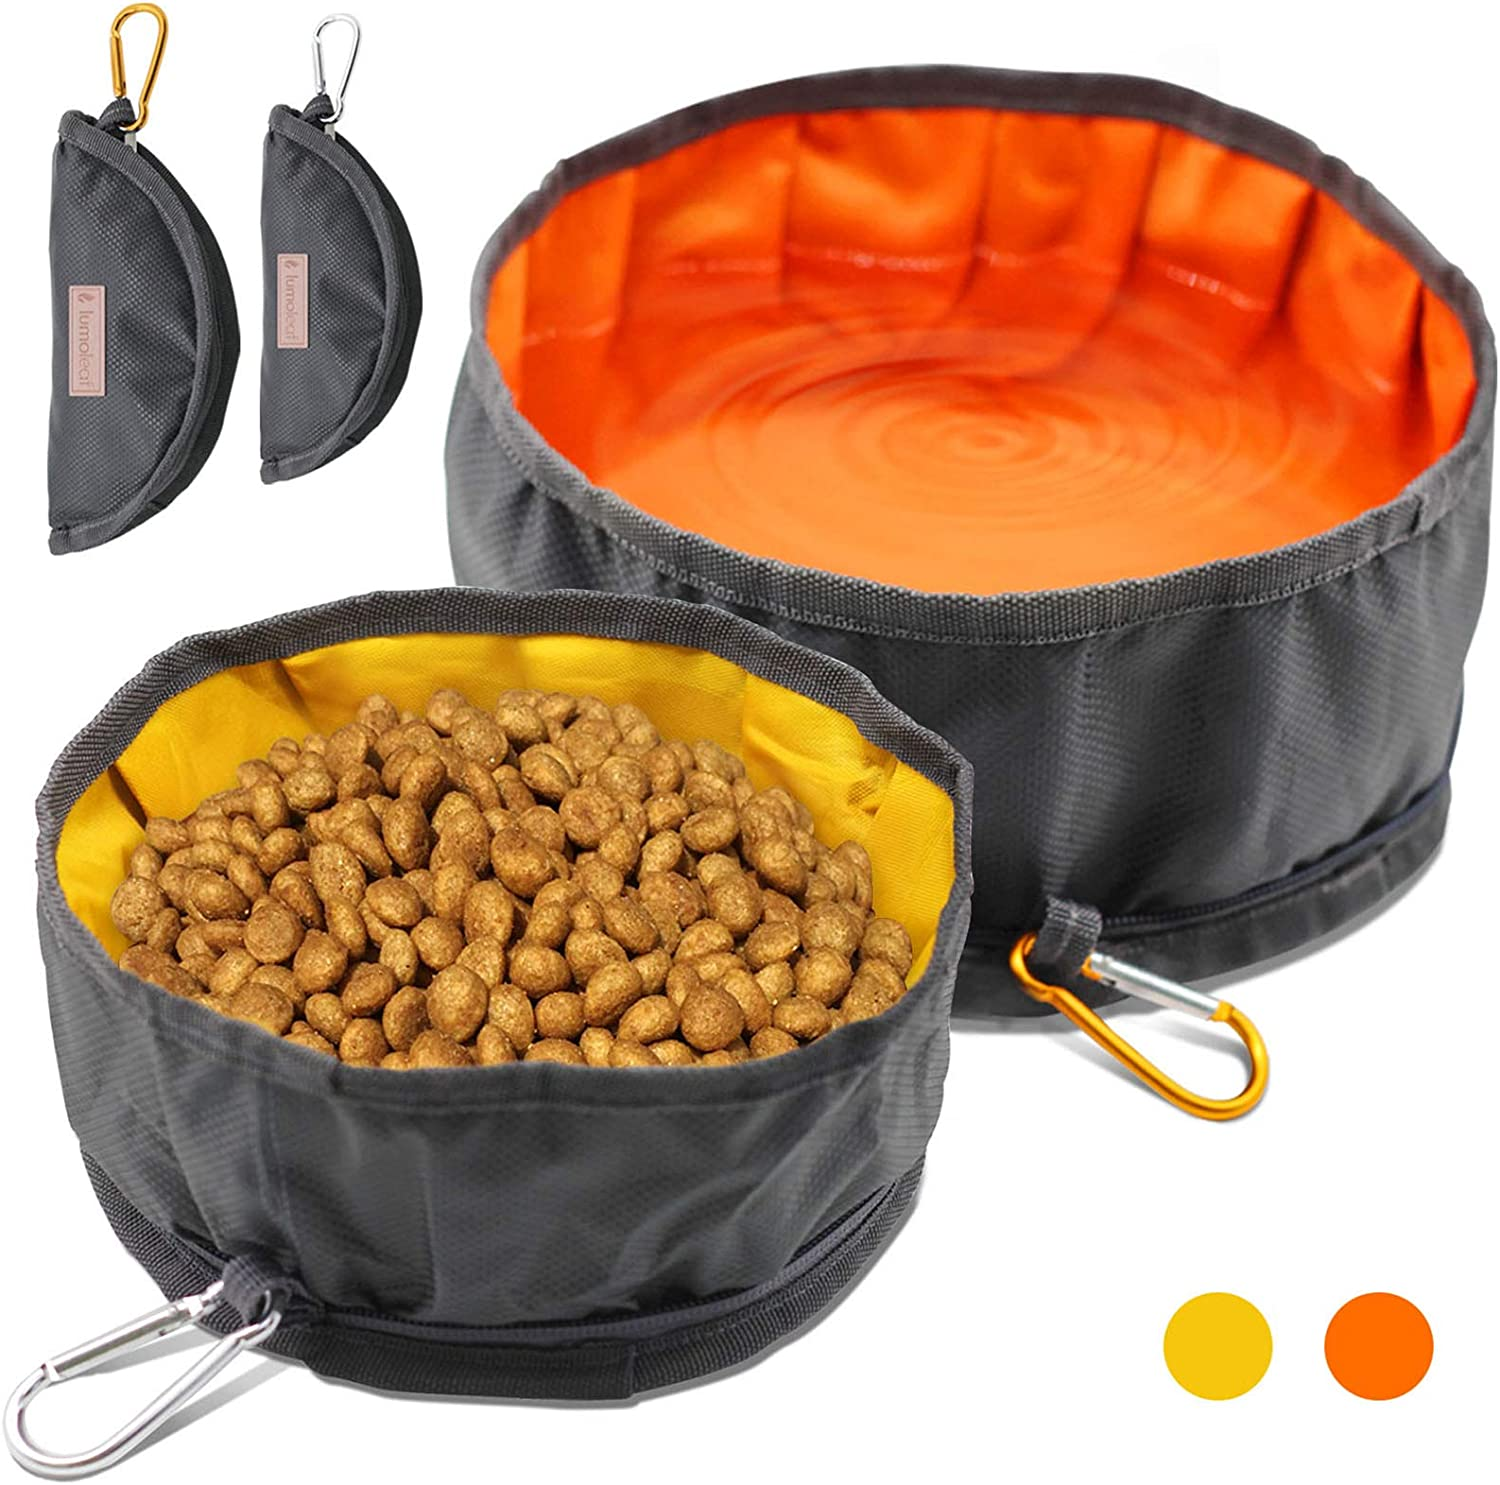 LumoLeaf Collapsible Dog Travel Bowls, Large Lightweight Foldable Bowl, Water and Food Bowls for Pets Dogs Cats with Zipper